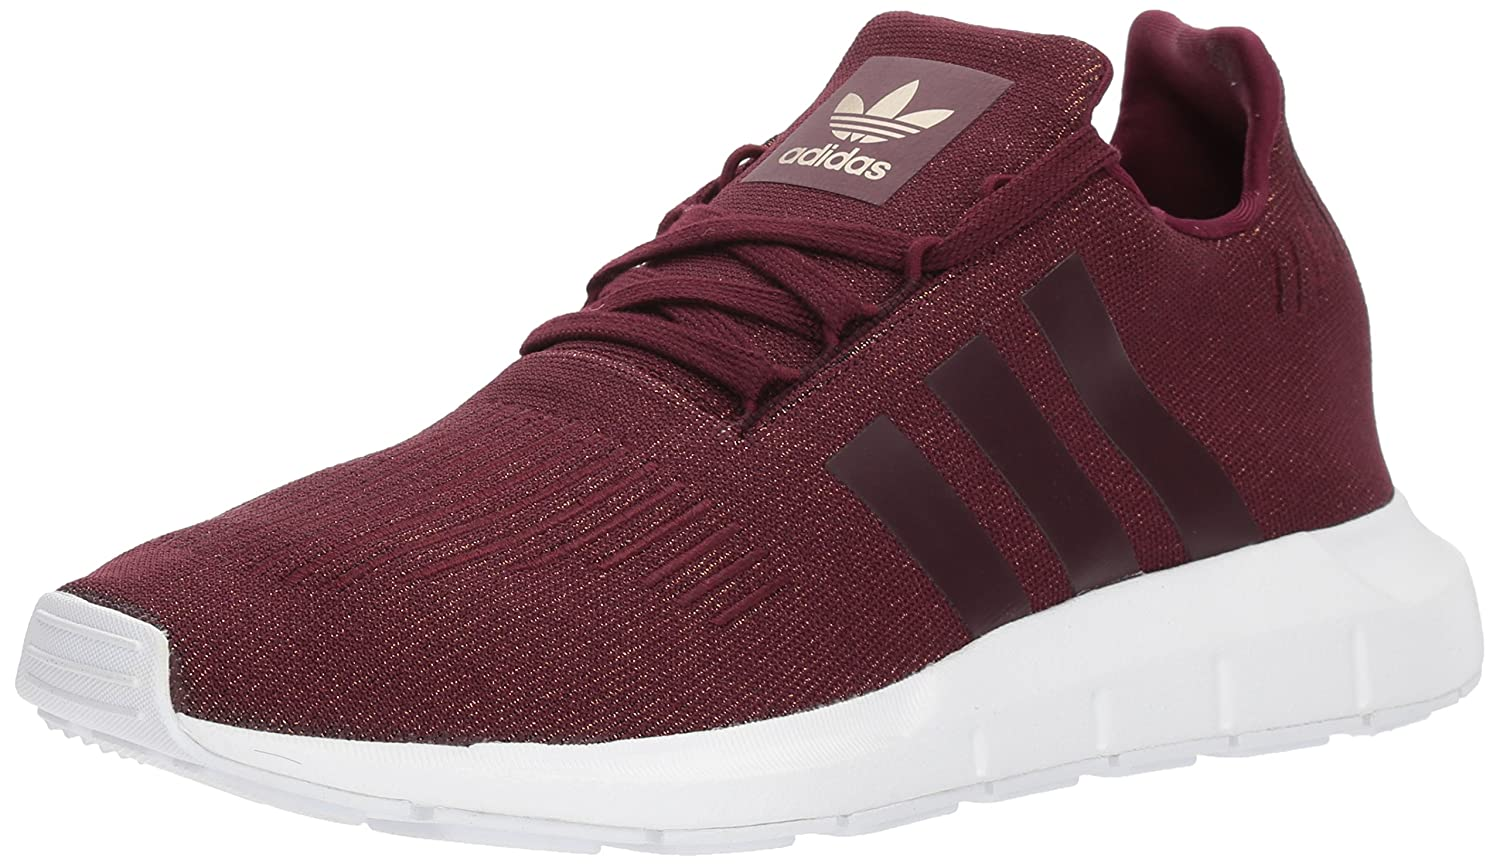 adidas Women's Swift Run W B072BX1H56 8 B(M) US|Maroon/Maroon/White